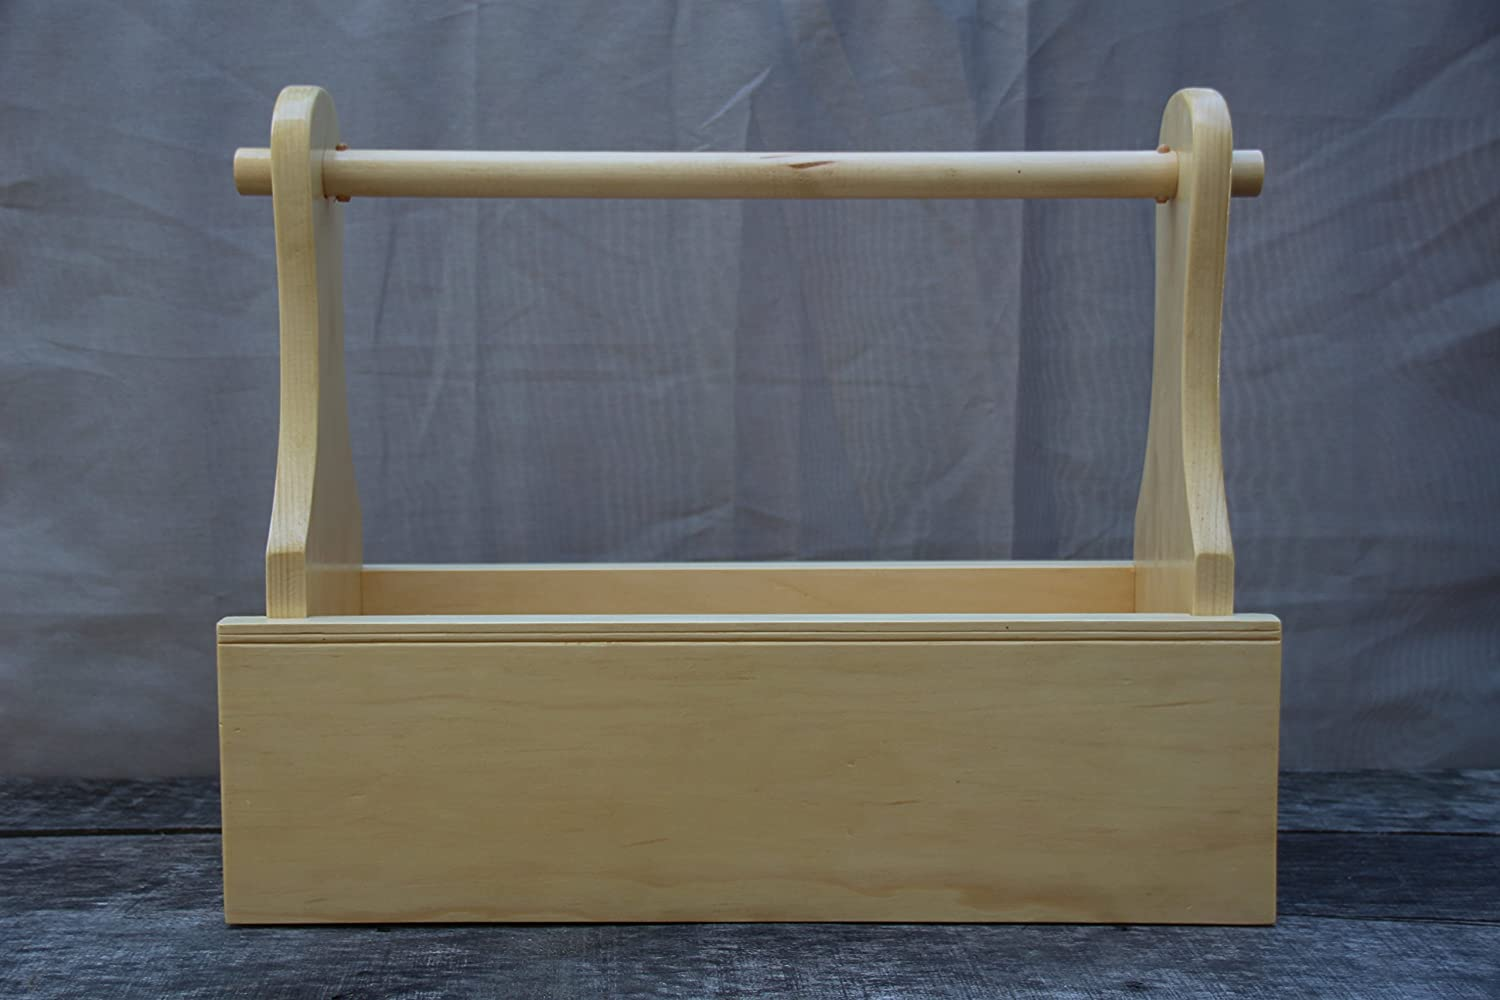 Handmade Wood Utility/Garden/Tool Tote. What a great Design! One of my Favorites for sure...